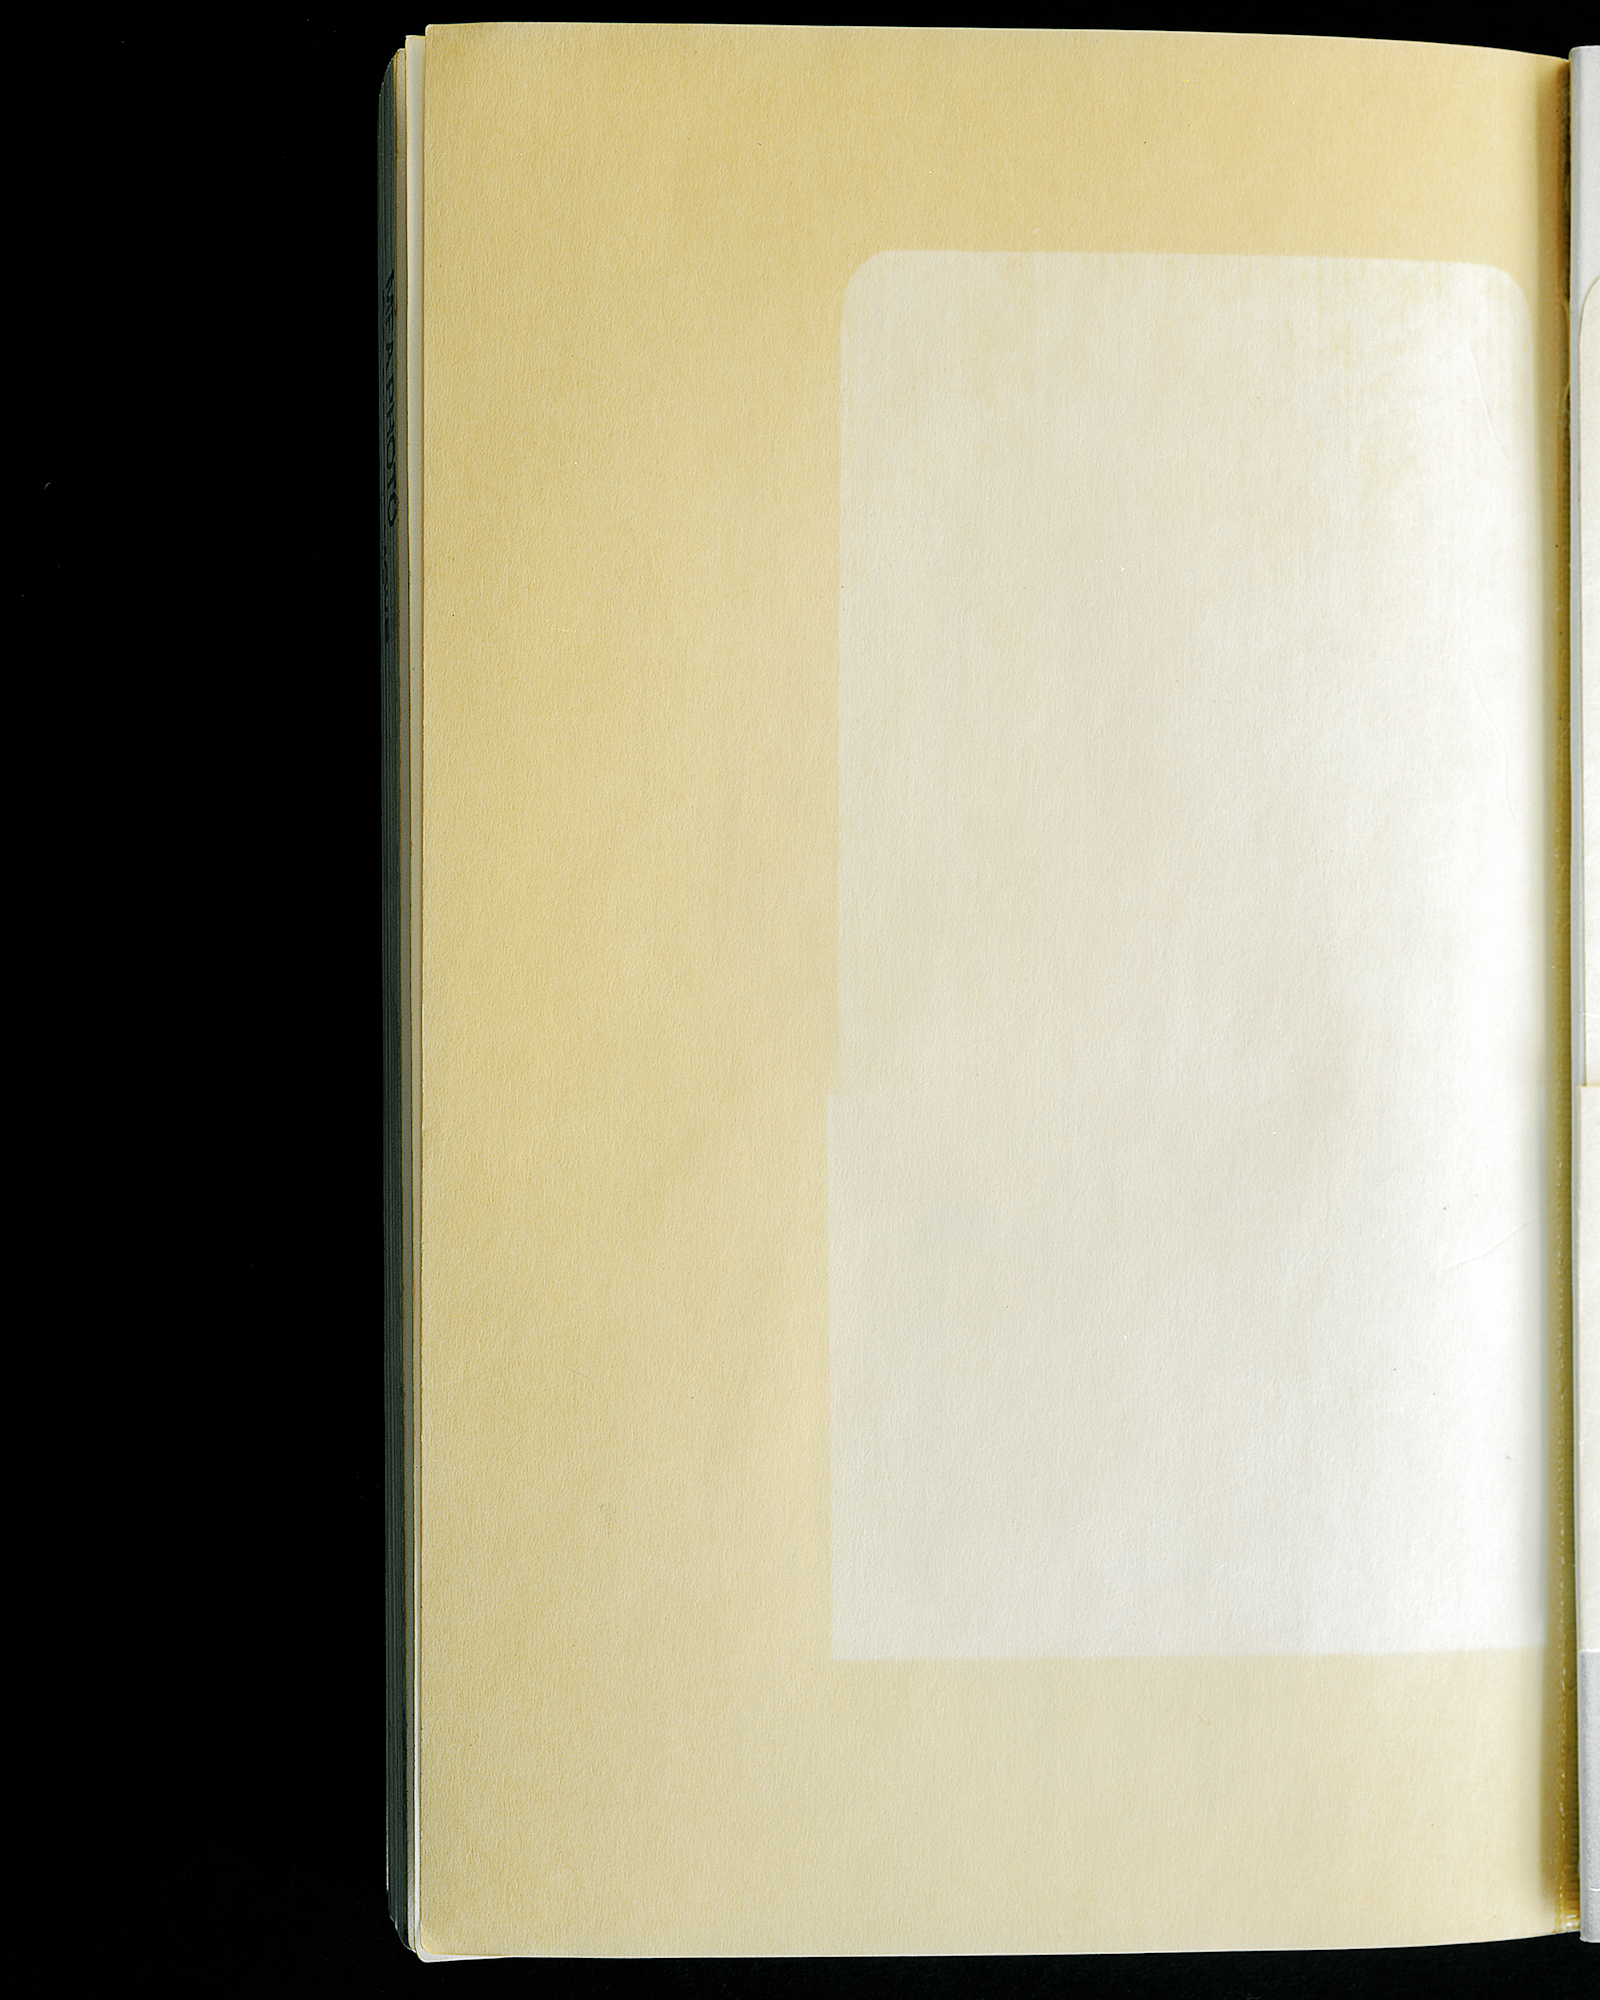 Library-1 , archival pigment print,11 x 14 inches, 2012